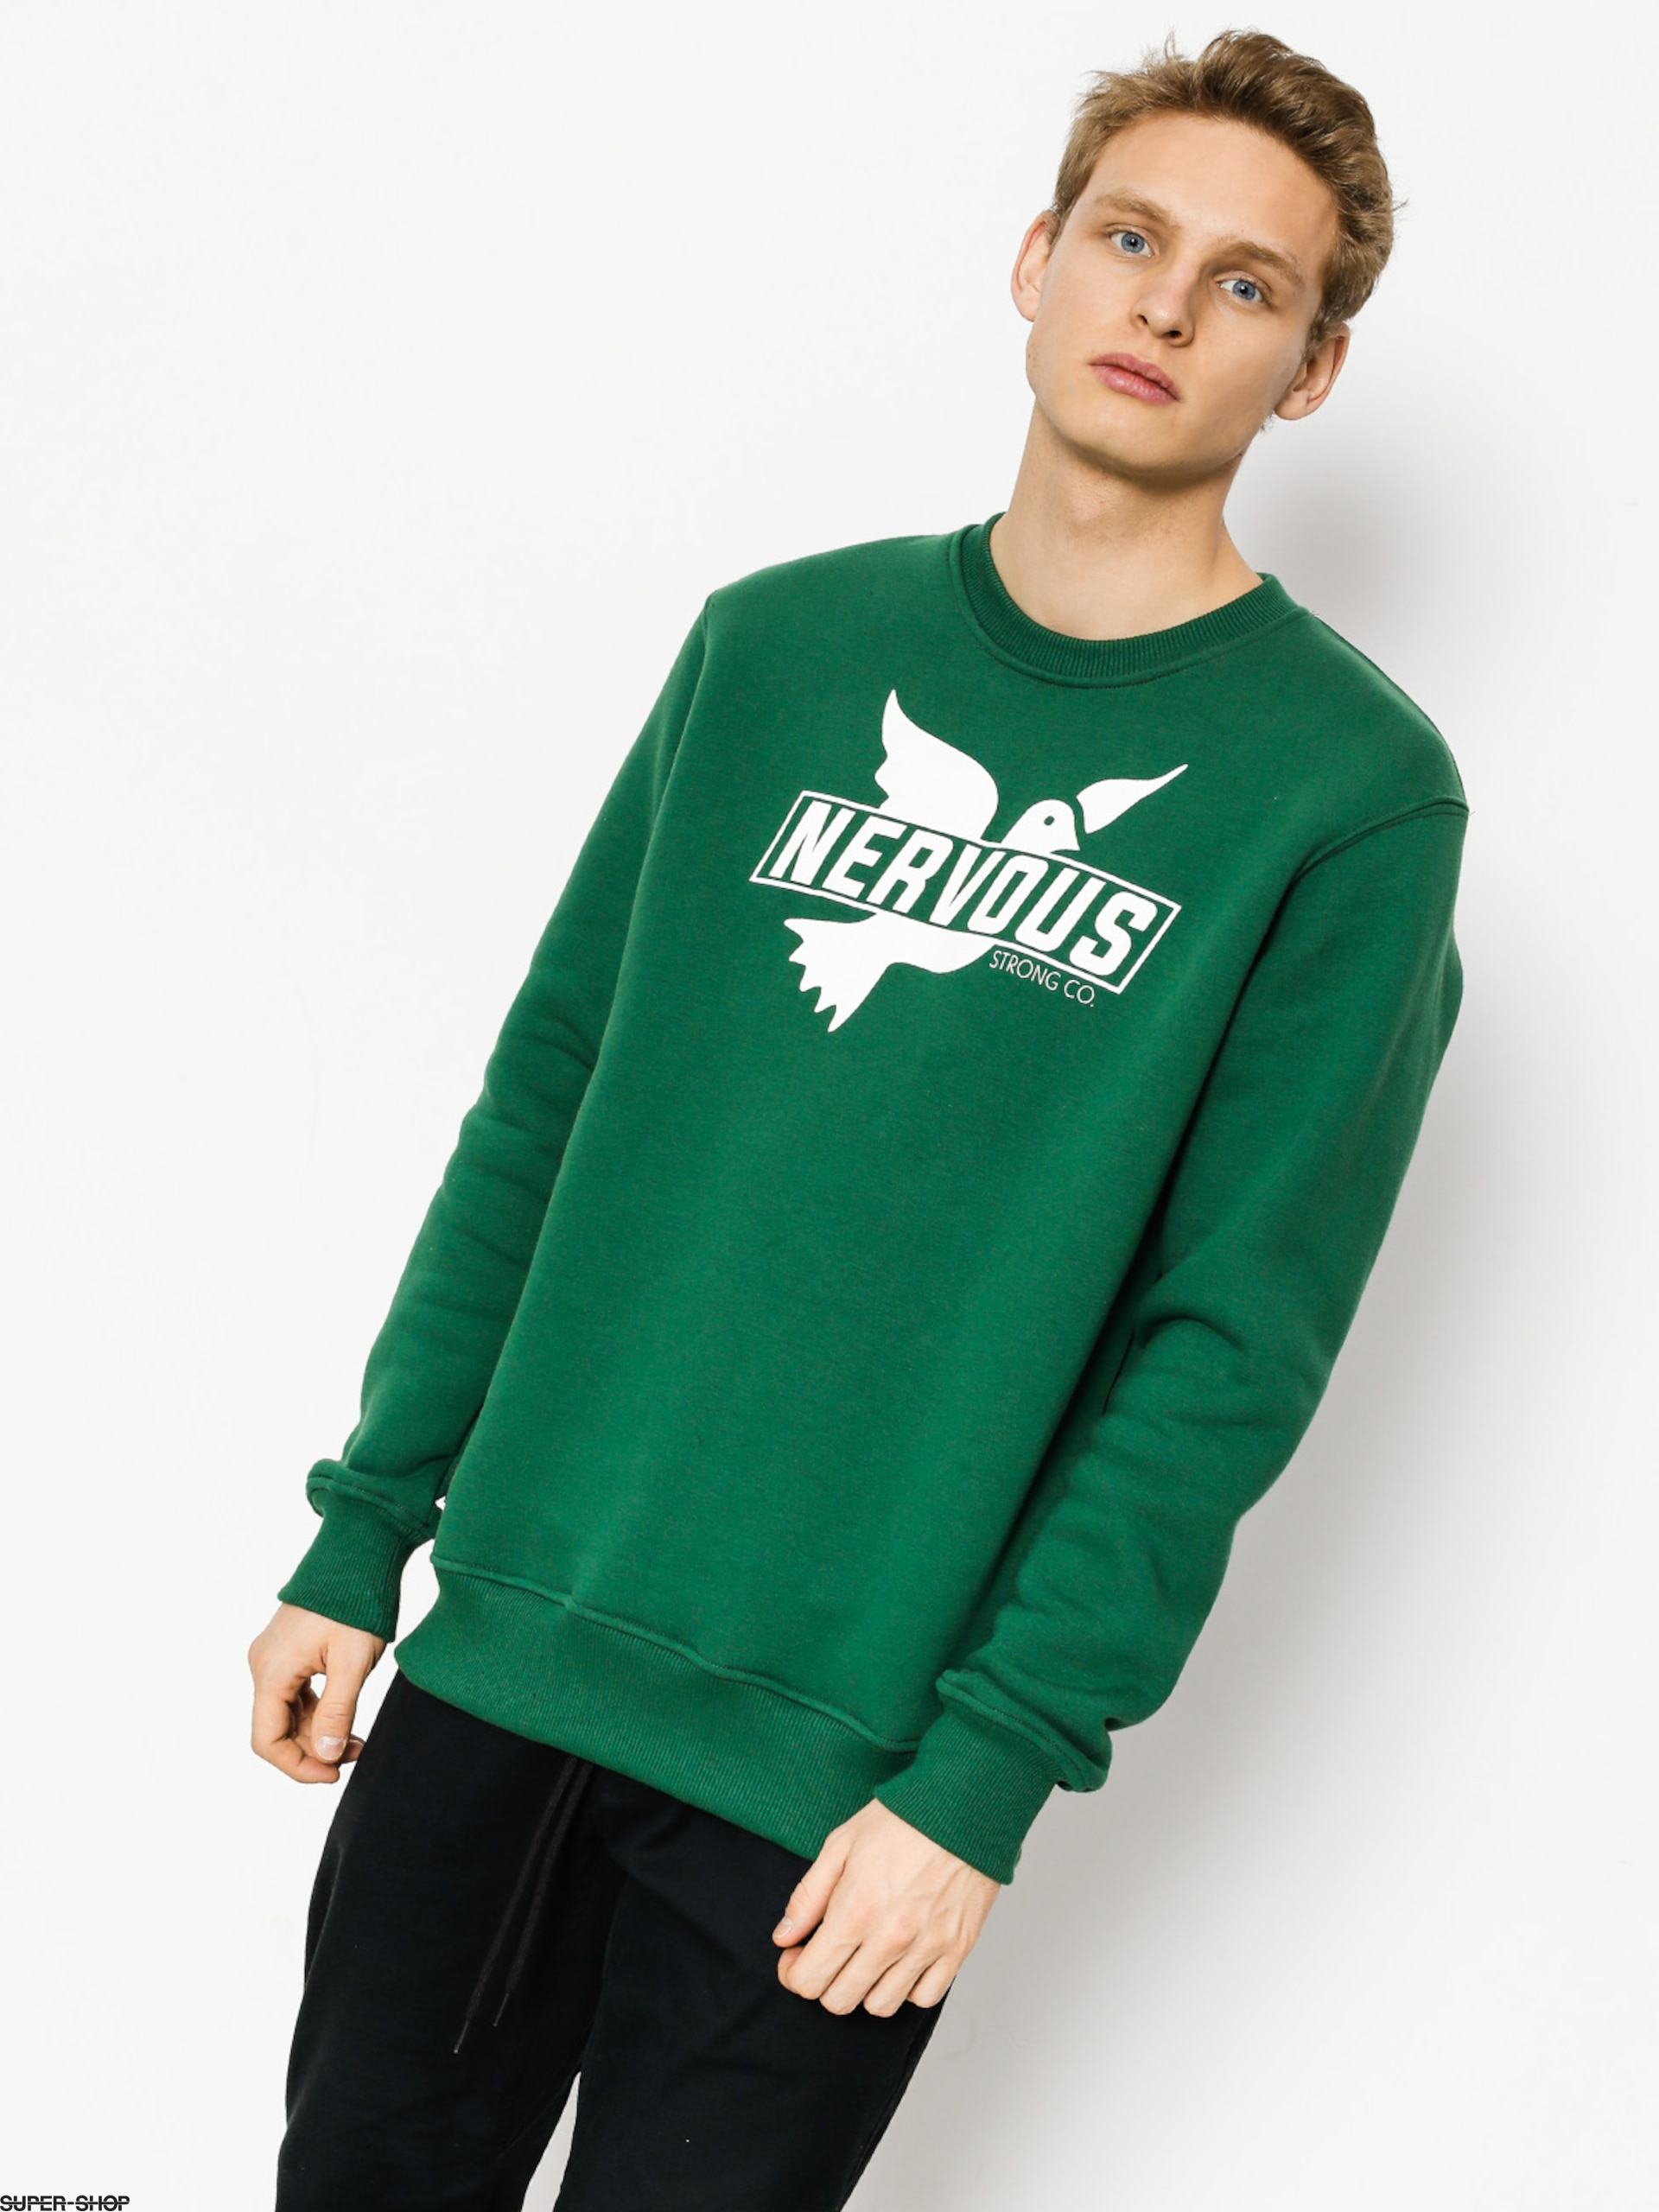 Nervous Sweatshirt Sticker Bottle (green)